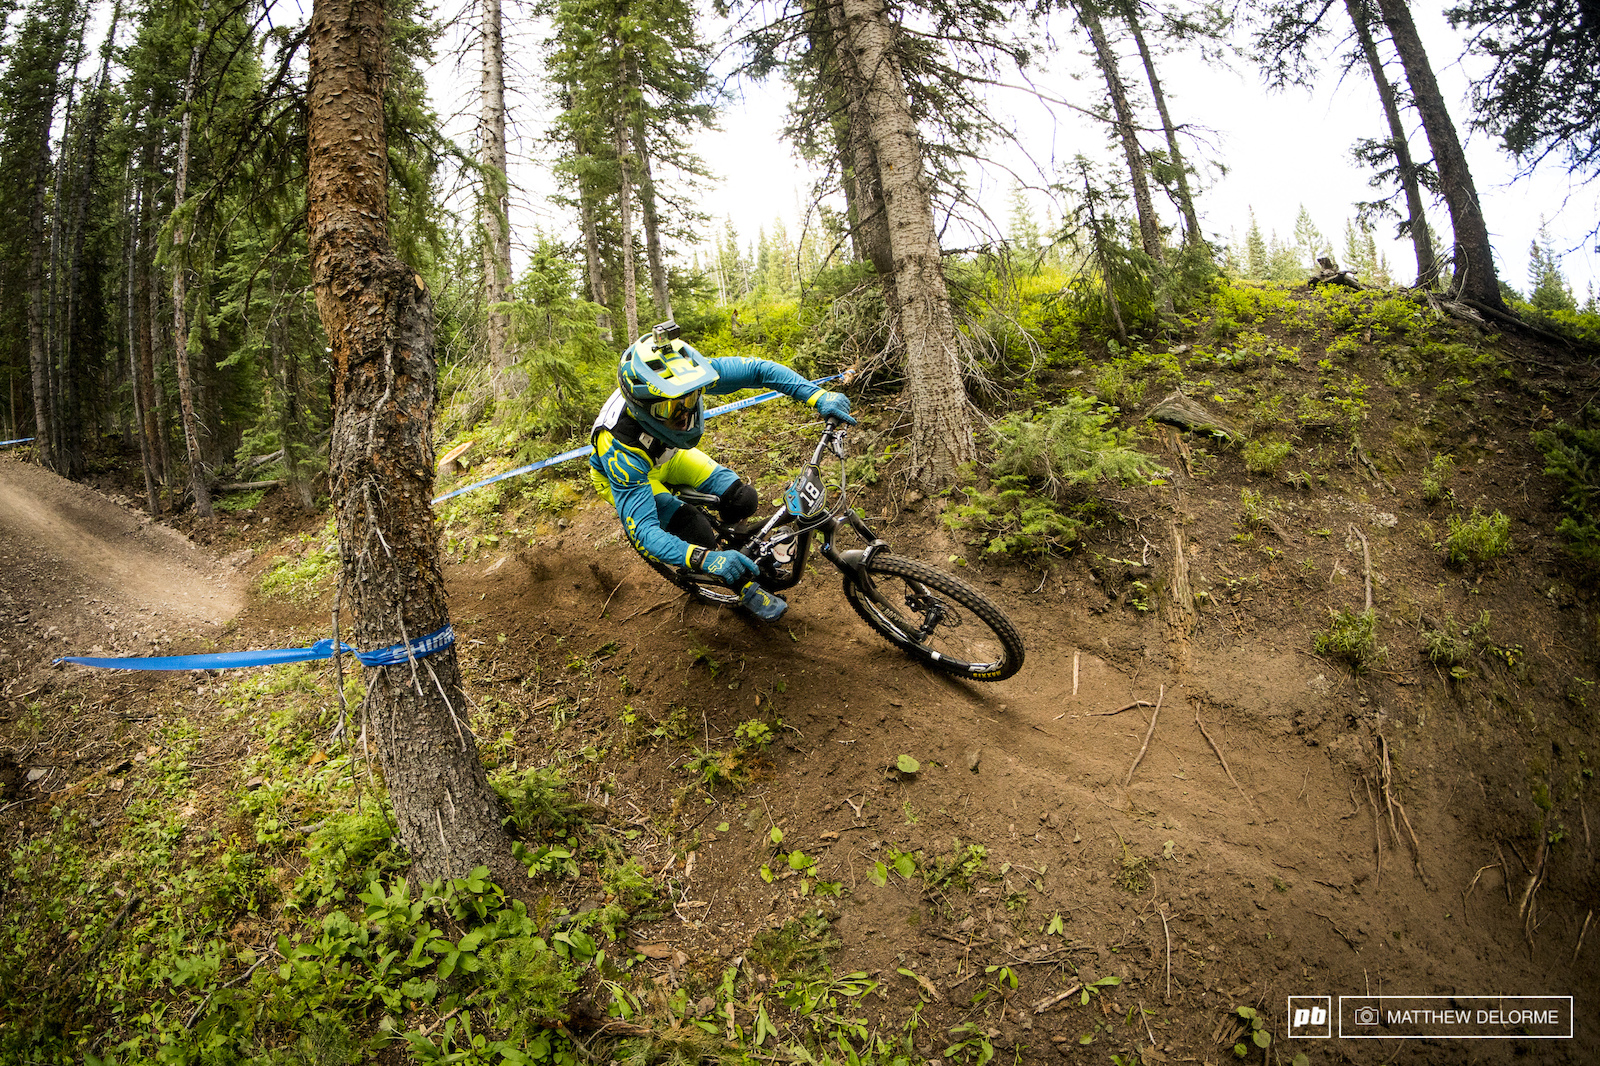 Theo Galy gets his tuck on in the pine forest.